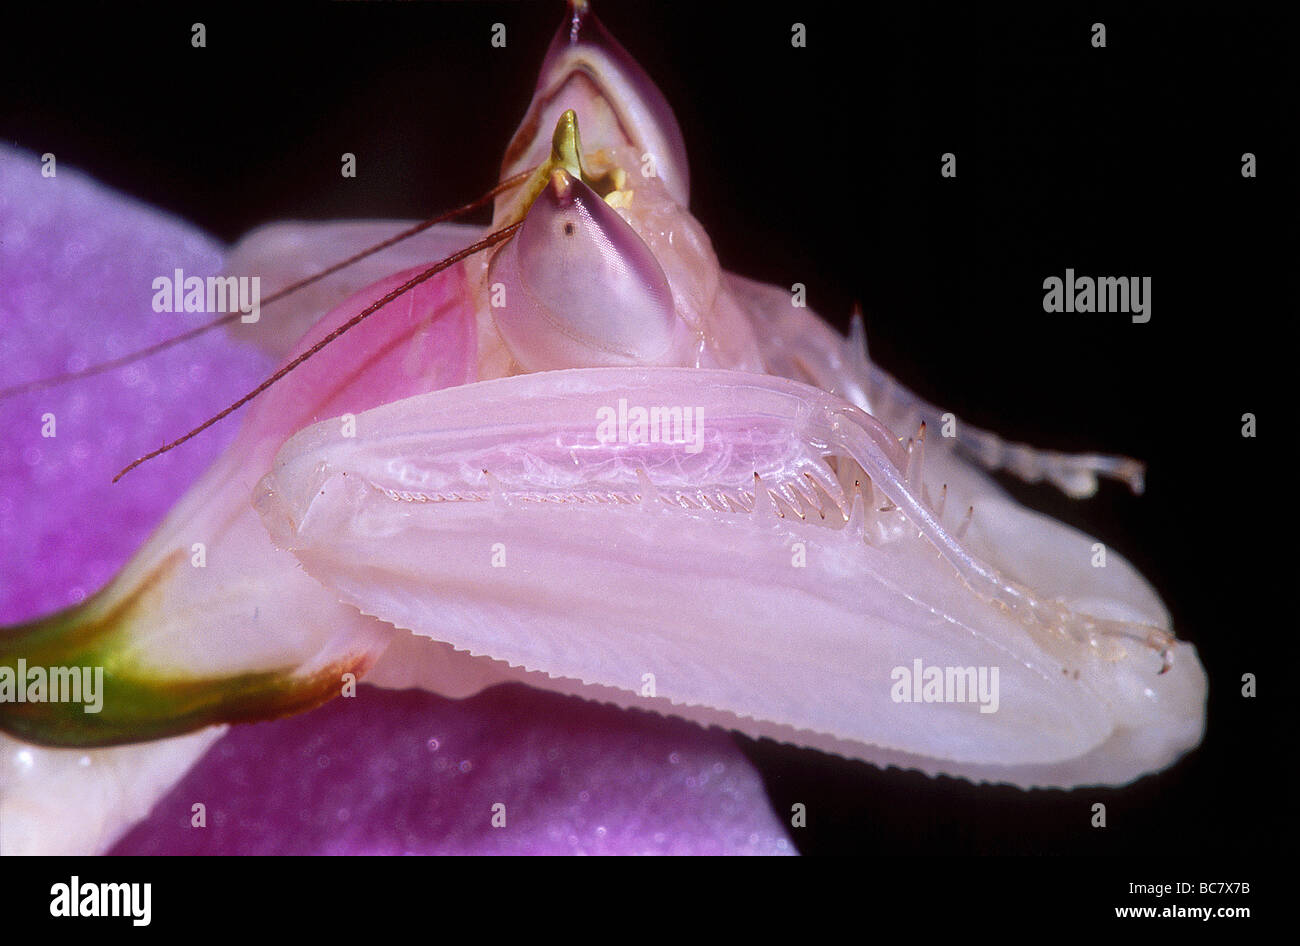 Orchid Mantis Hymenopus Coronatus Hidden In The Flower Of A Pink